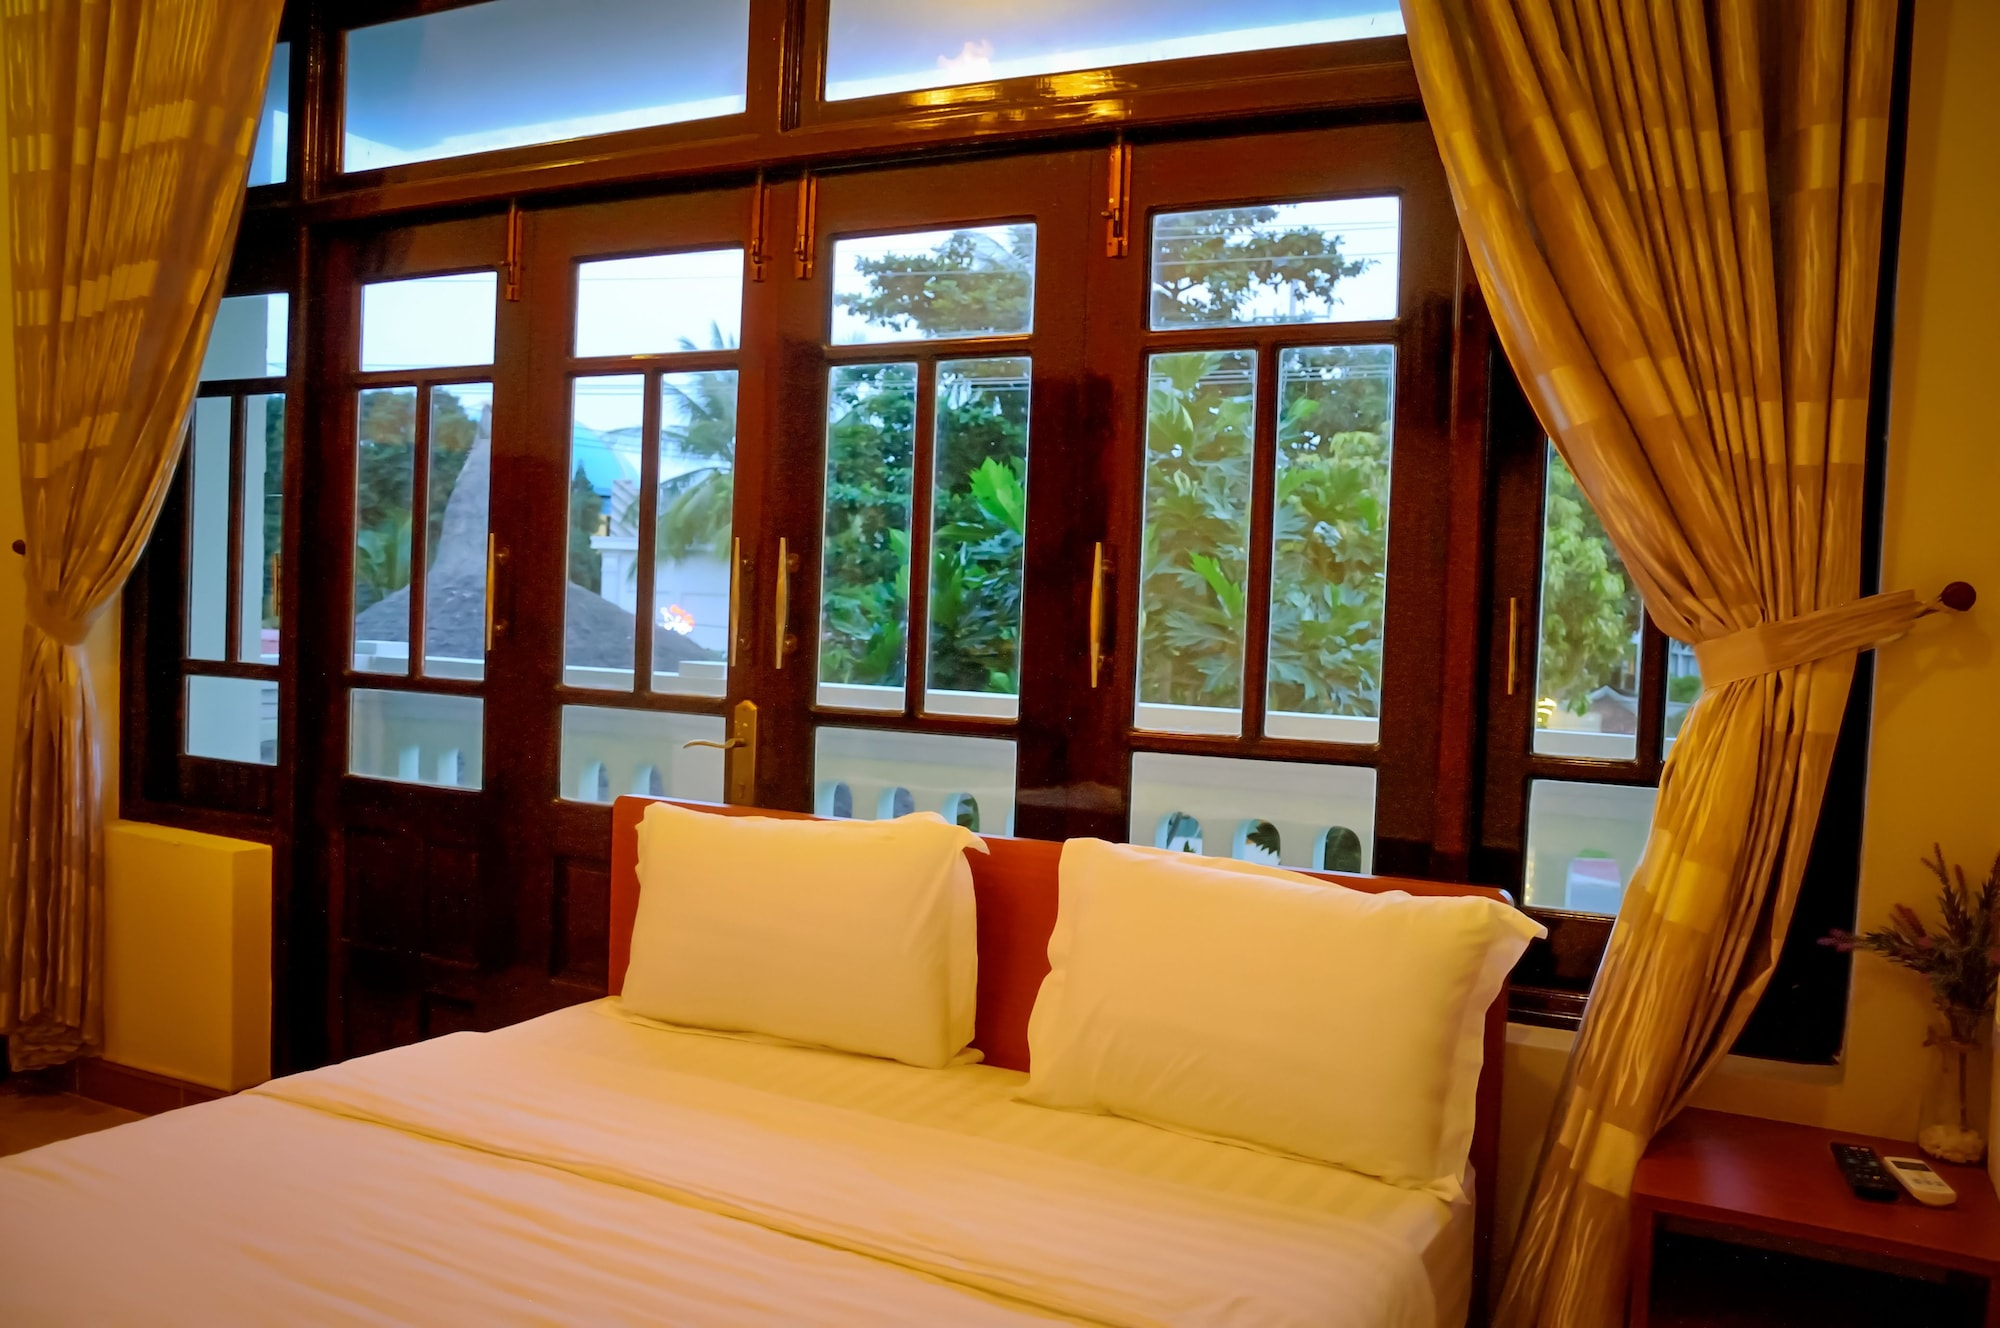 Chao Hotel, Phan Thiết